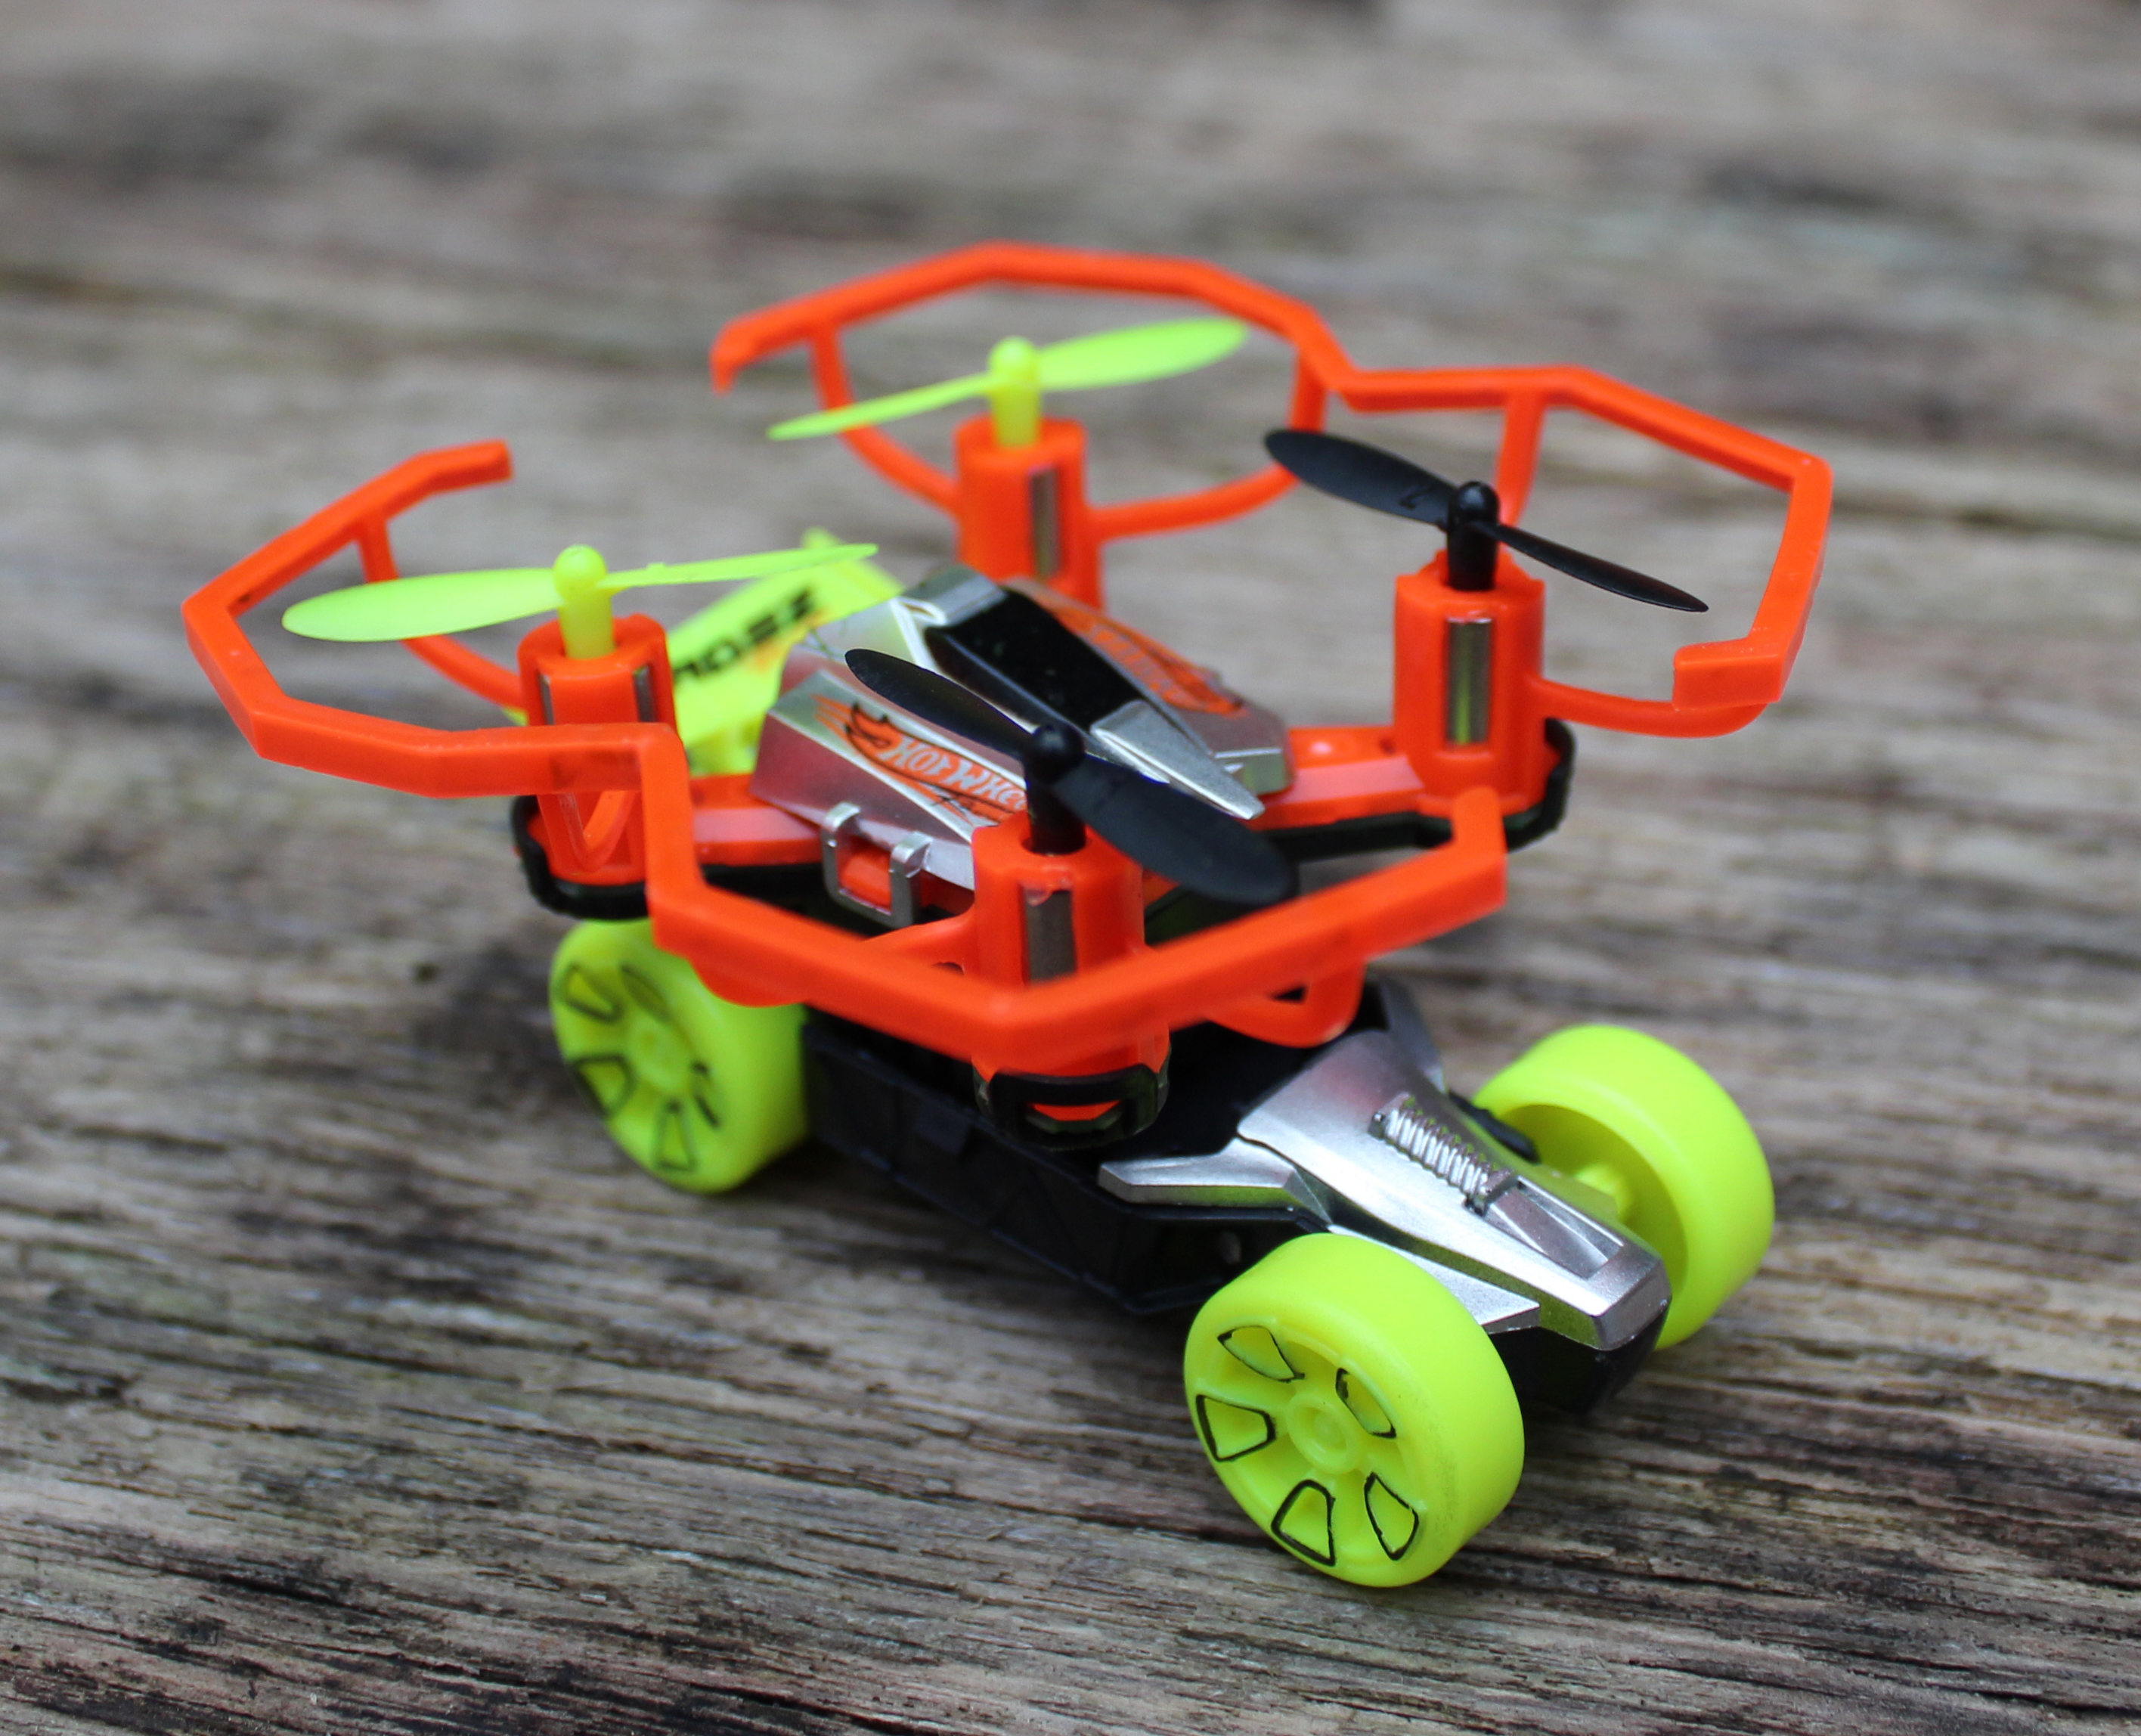 Hot Wheels Drone and Vehicle Set - Review ⋆ Yorkshire Wonders